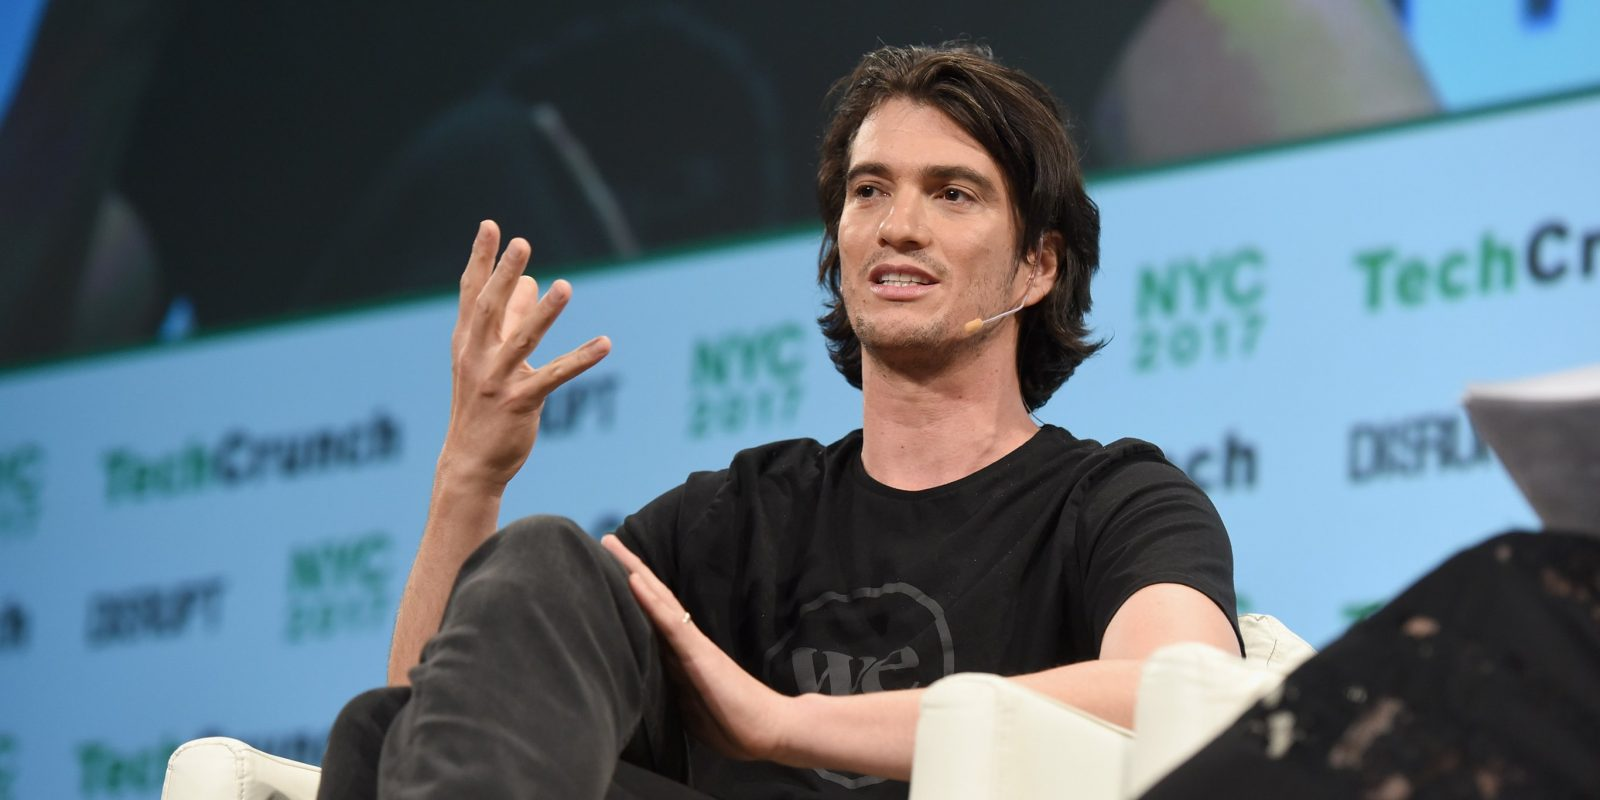 WeWork will reportedly shelve its IPO in a 'last-minute decision' after weak investor interest